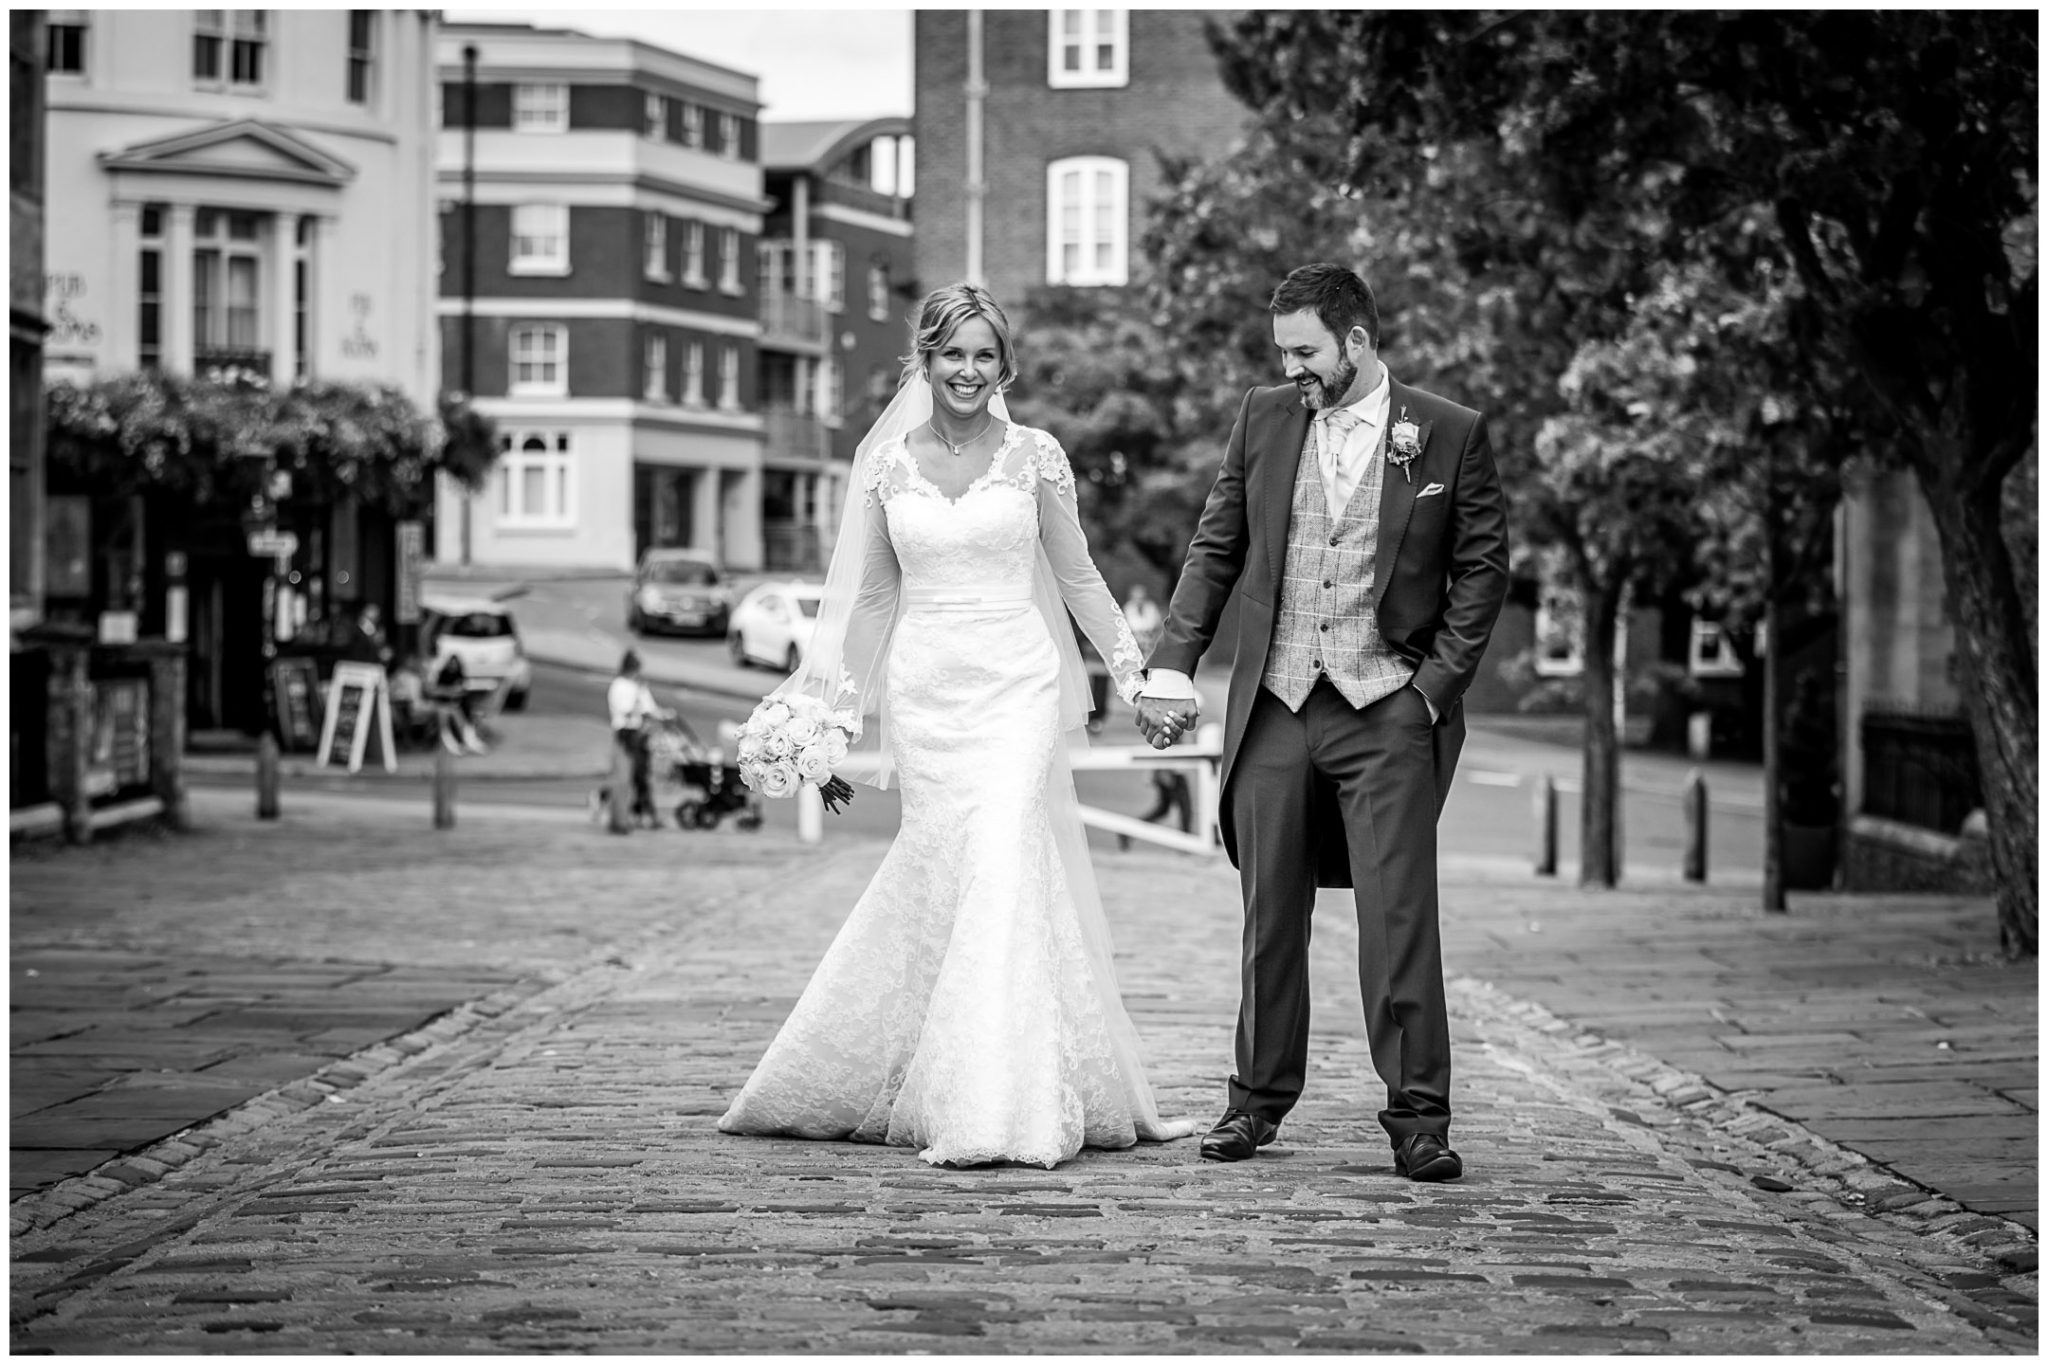 The bride and groom walk together along Castle Avenue in Winchester